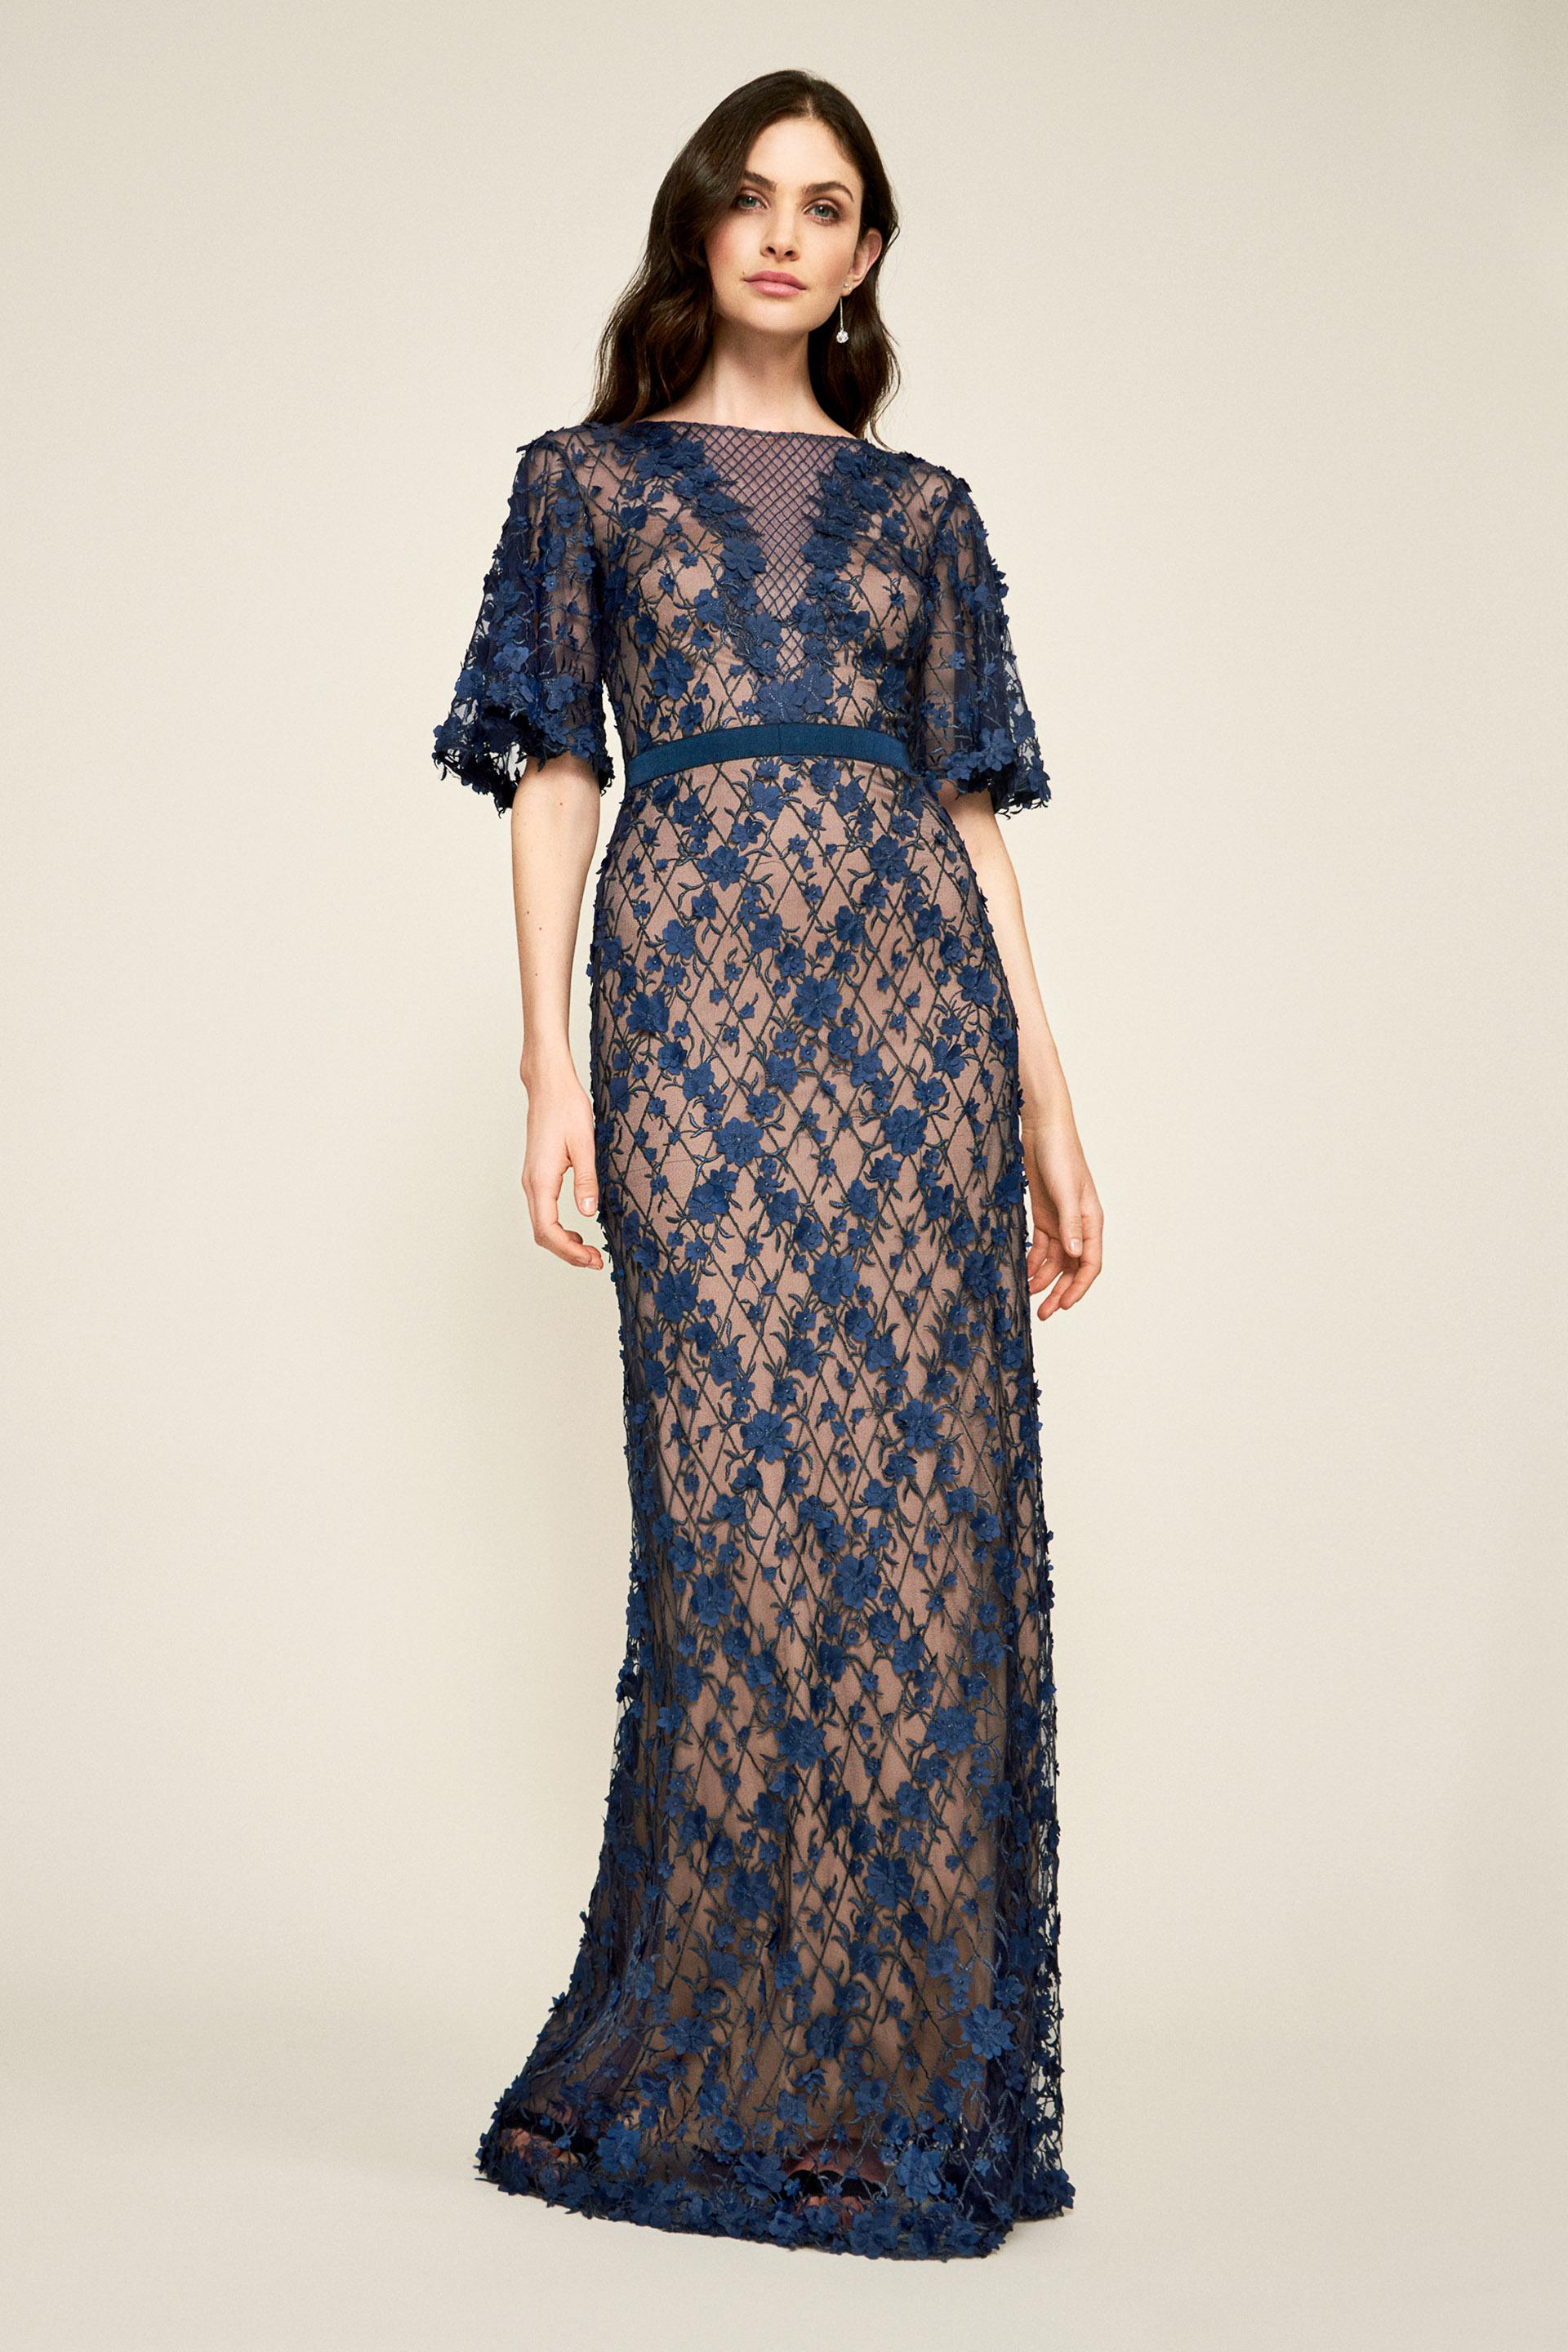 ae45c2a6a1 Lyst - Tadashi Shoji Coriander Embroidered Tulle Gown in Blue